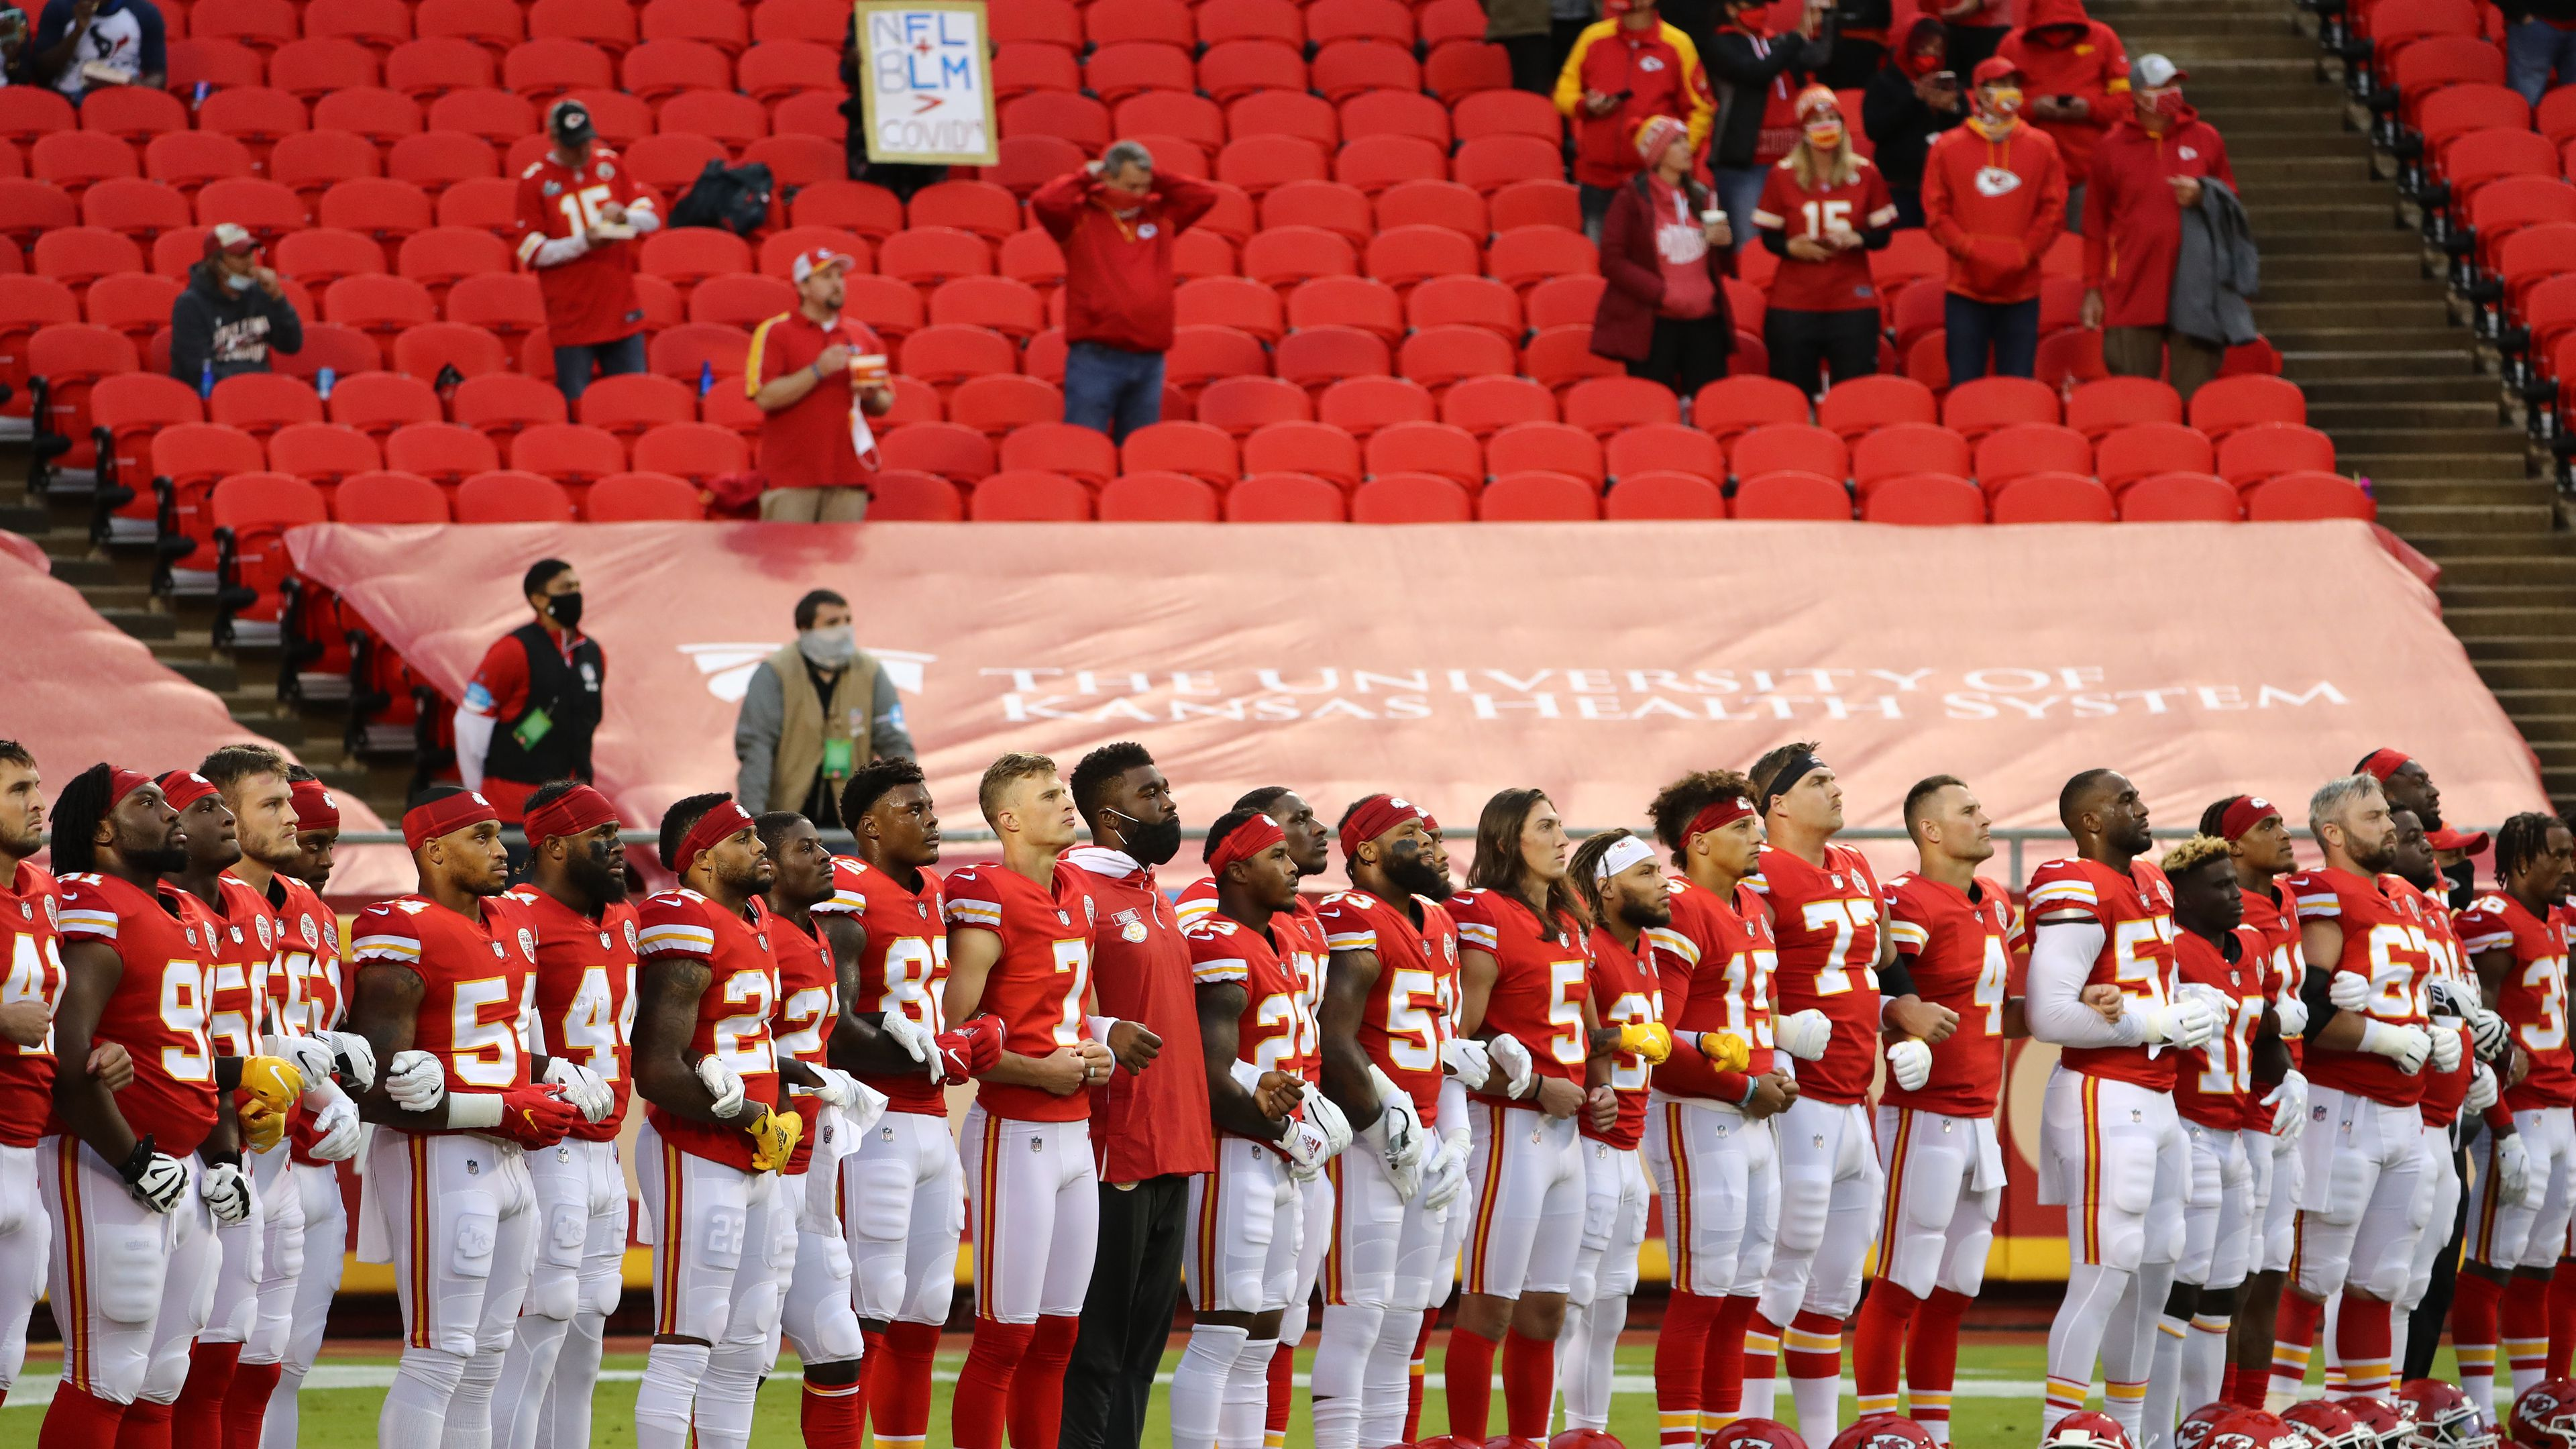 Members of the Kansas City Chiefs stand united with locked arms.